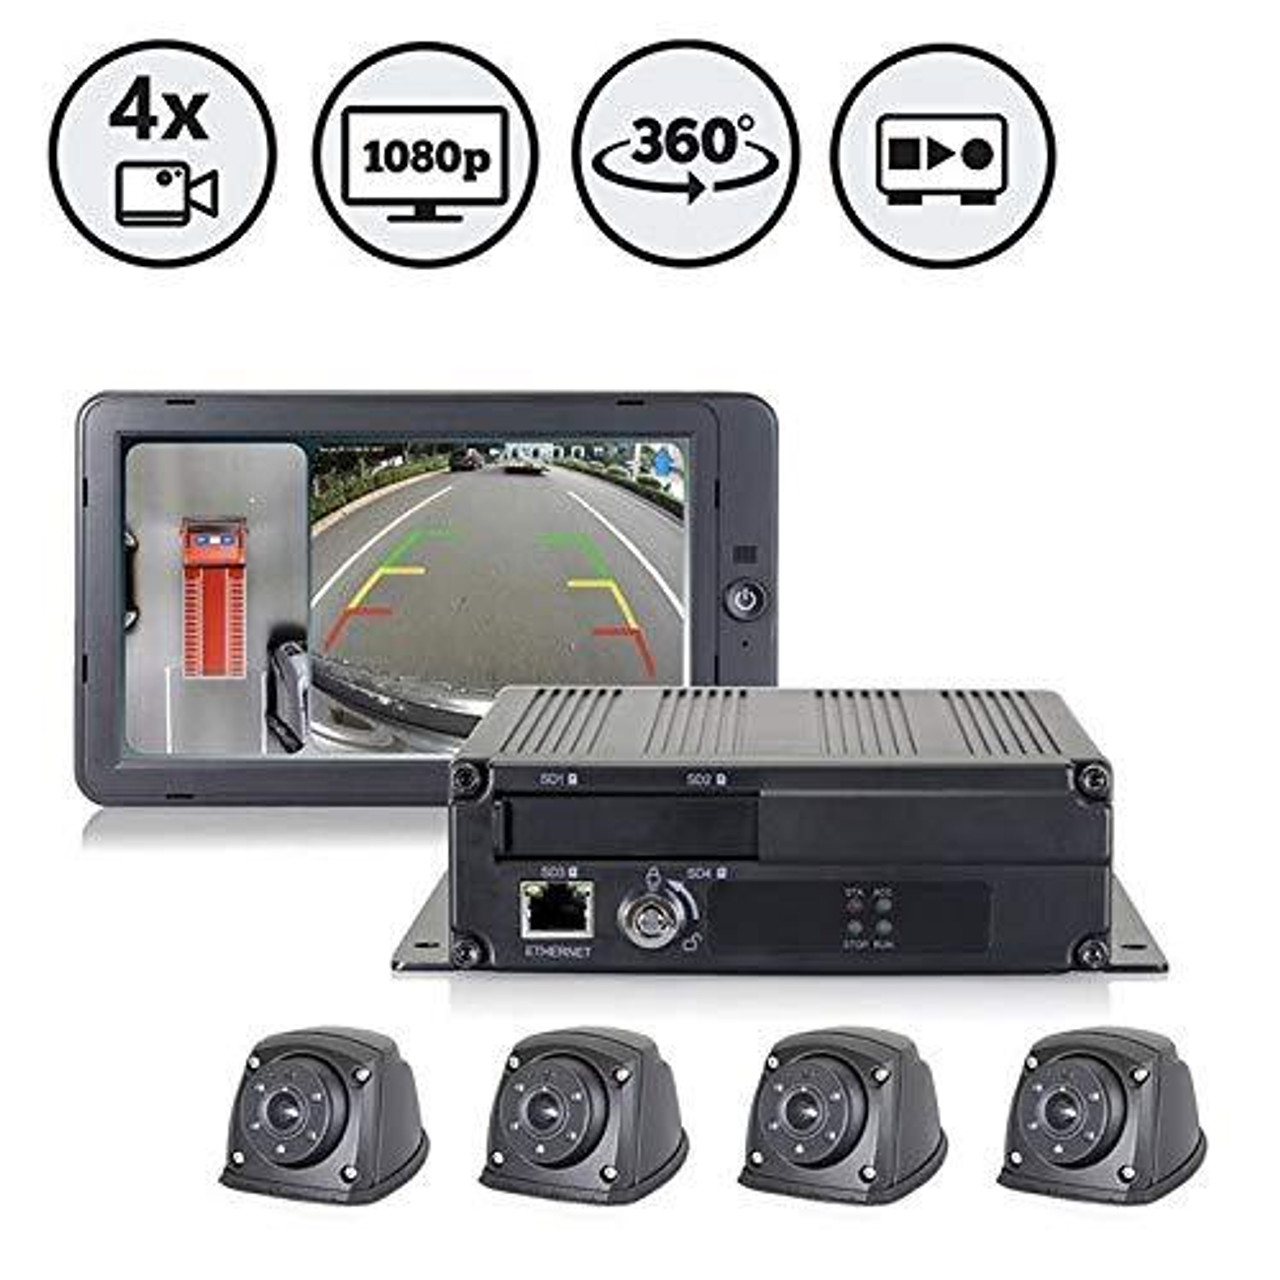 1080P HD 360° Camera System with Built-in Recording (RVS-77555)